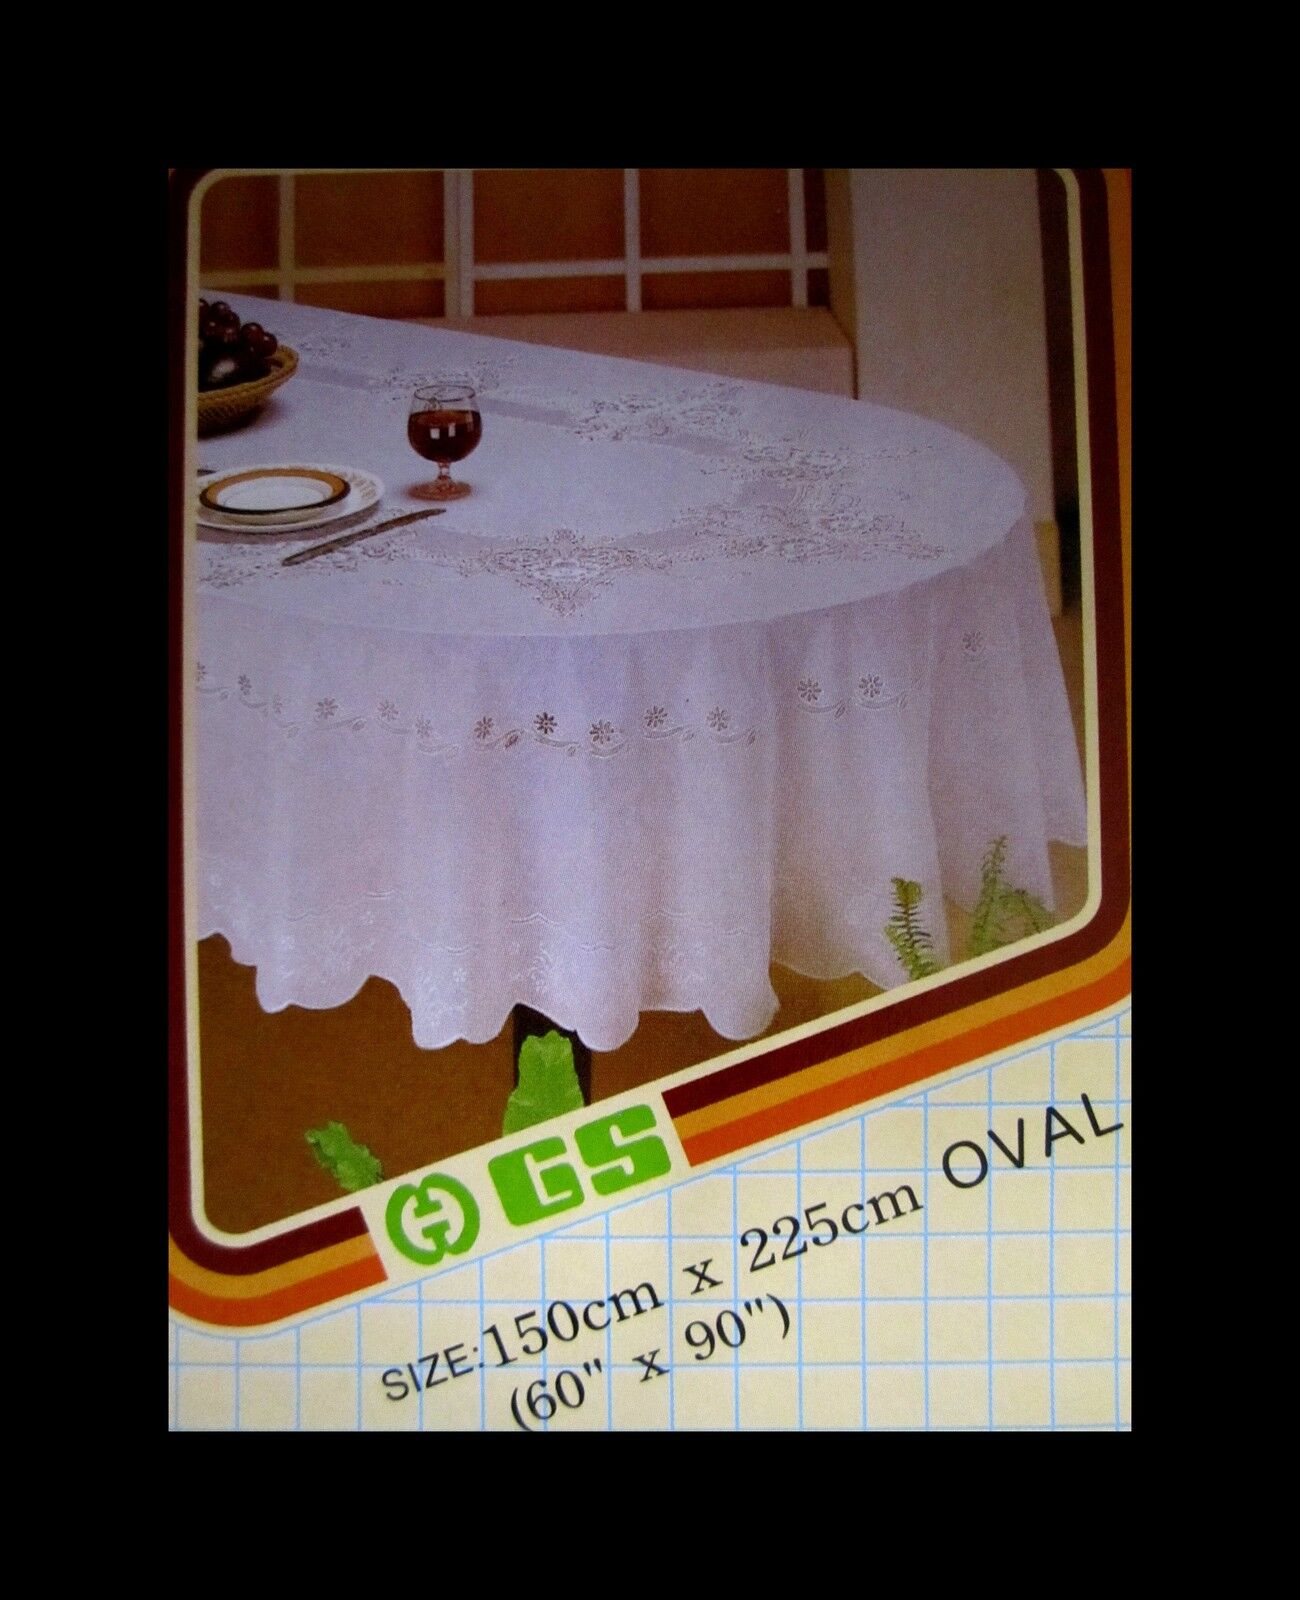 Vinyl Tischdecken Oval Details About 150 X 225 Cm Oval White Vinyl Tablecloth Sheet Flower Pattern New